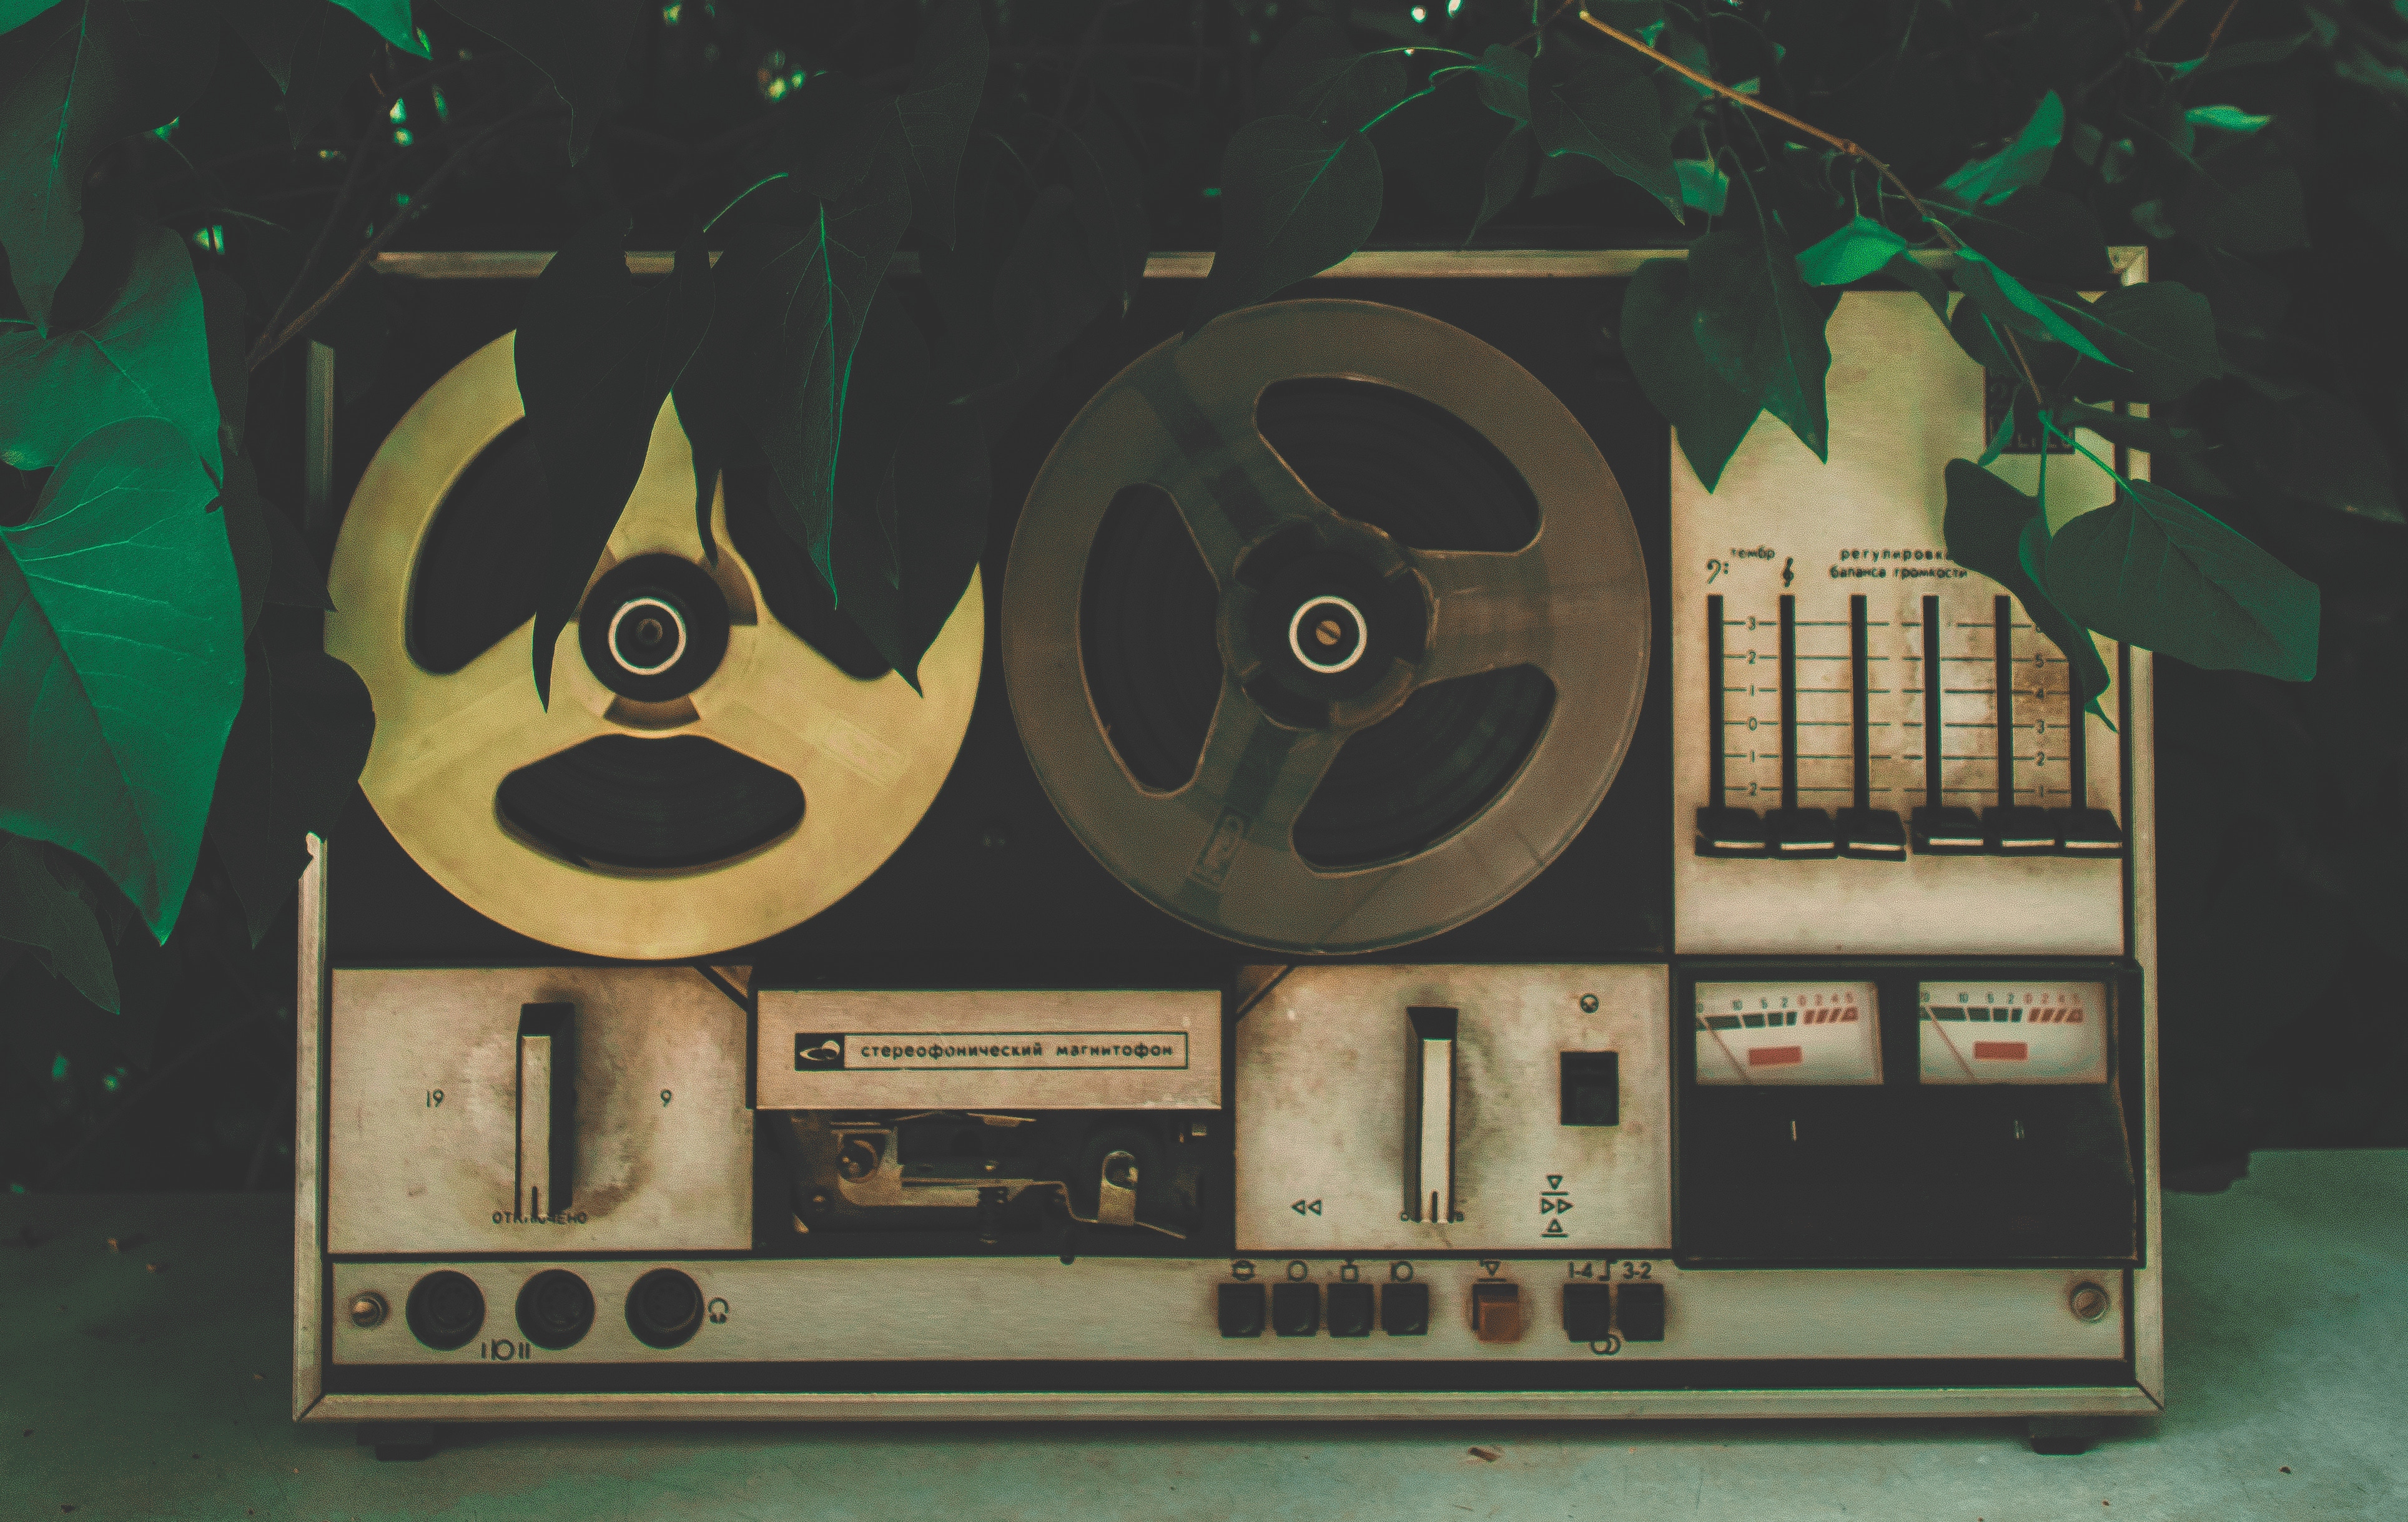 Reel-to-reel tape recorder surrounded by leaves and tree branches.